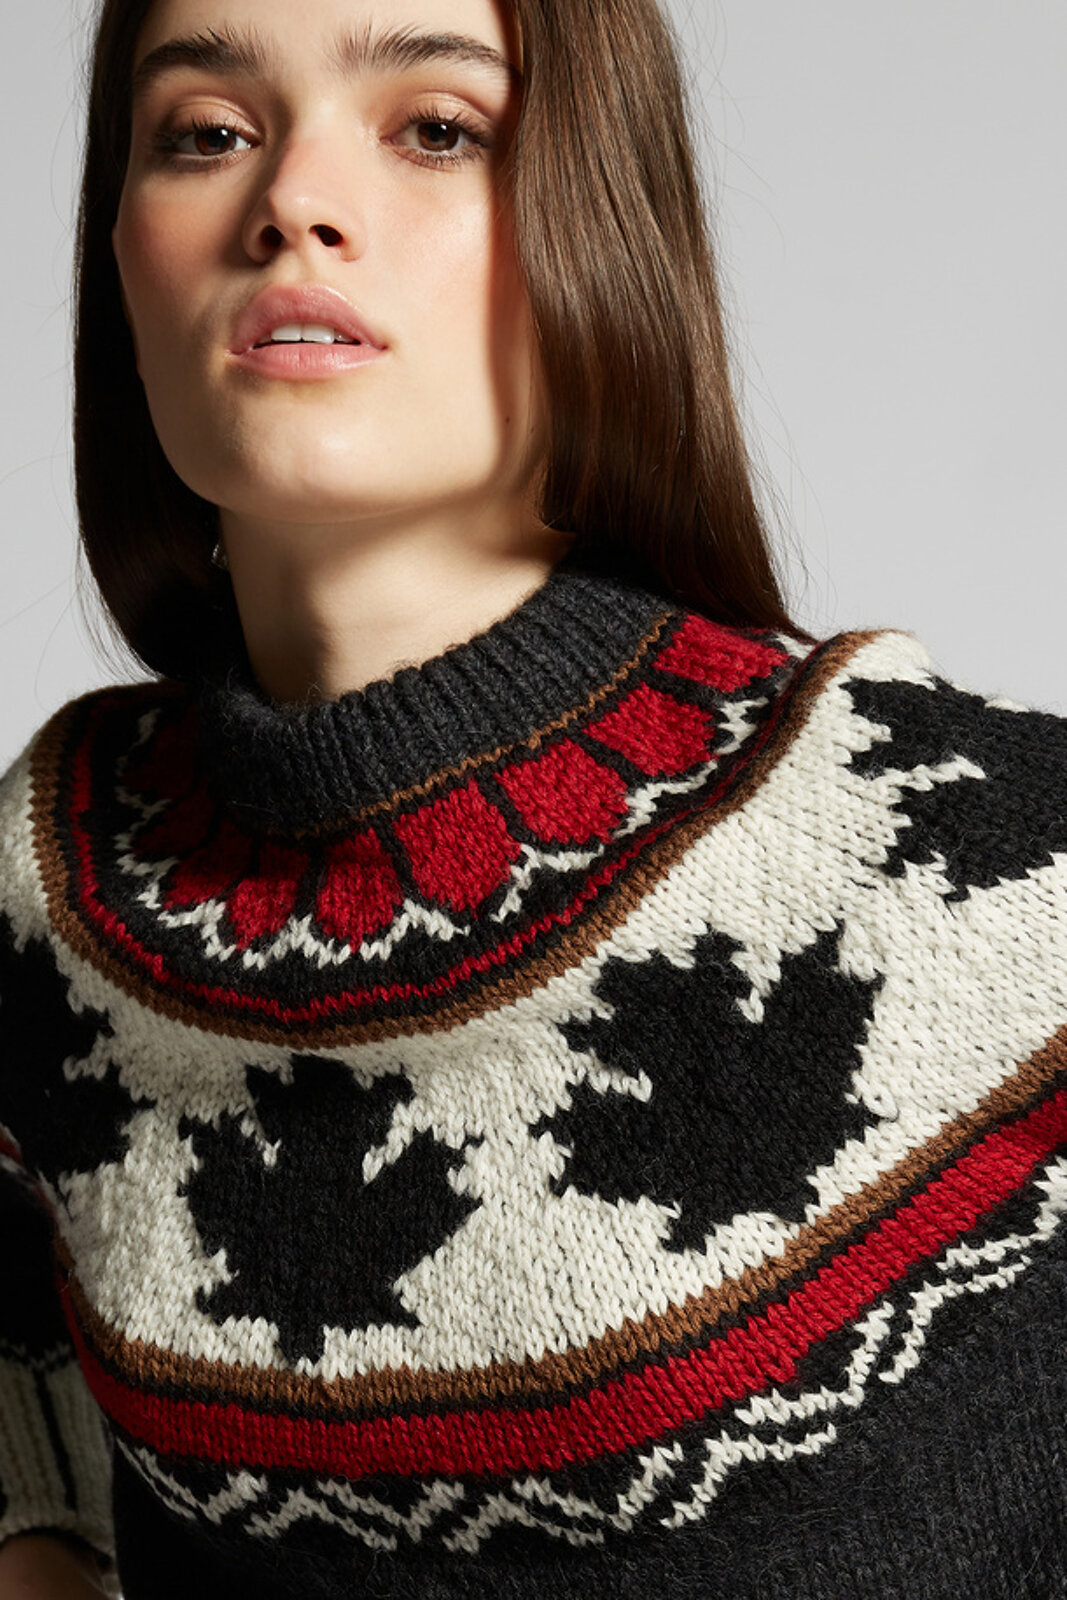 Wool Patterned Knit Sweater - Dsquared2